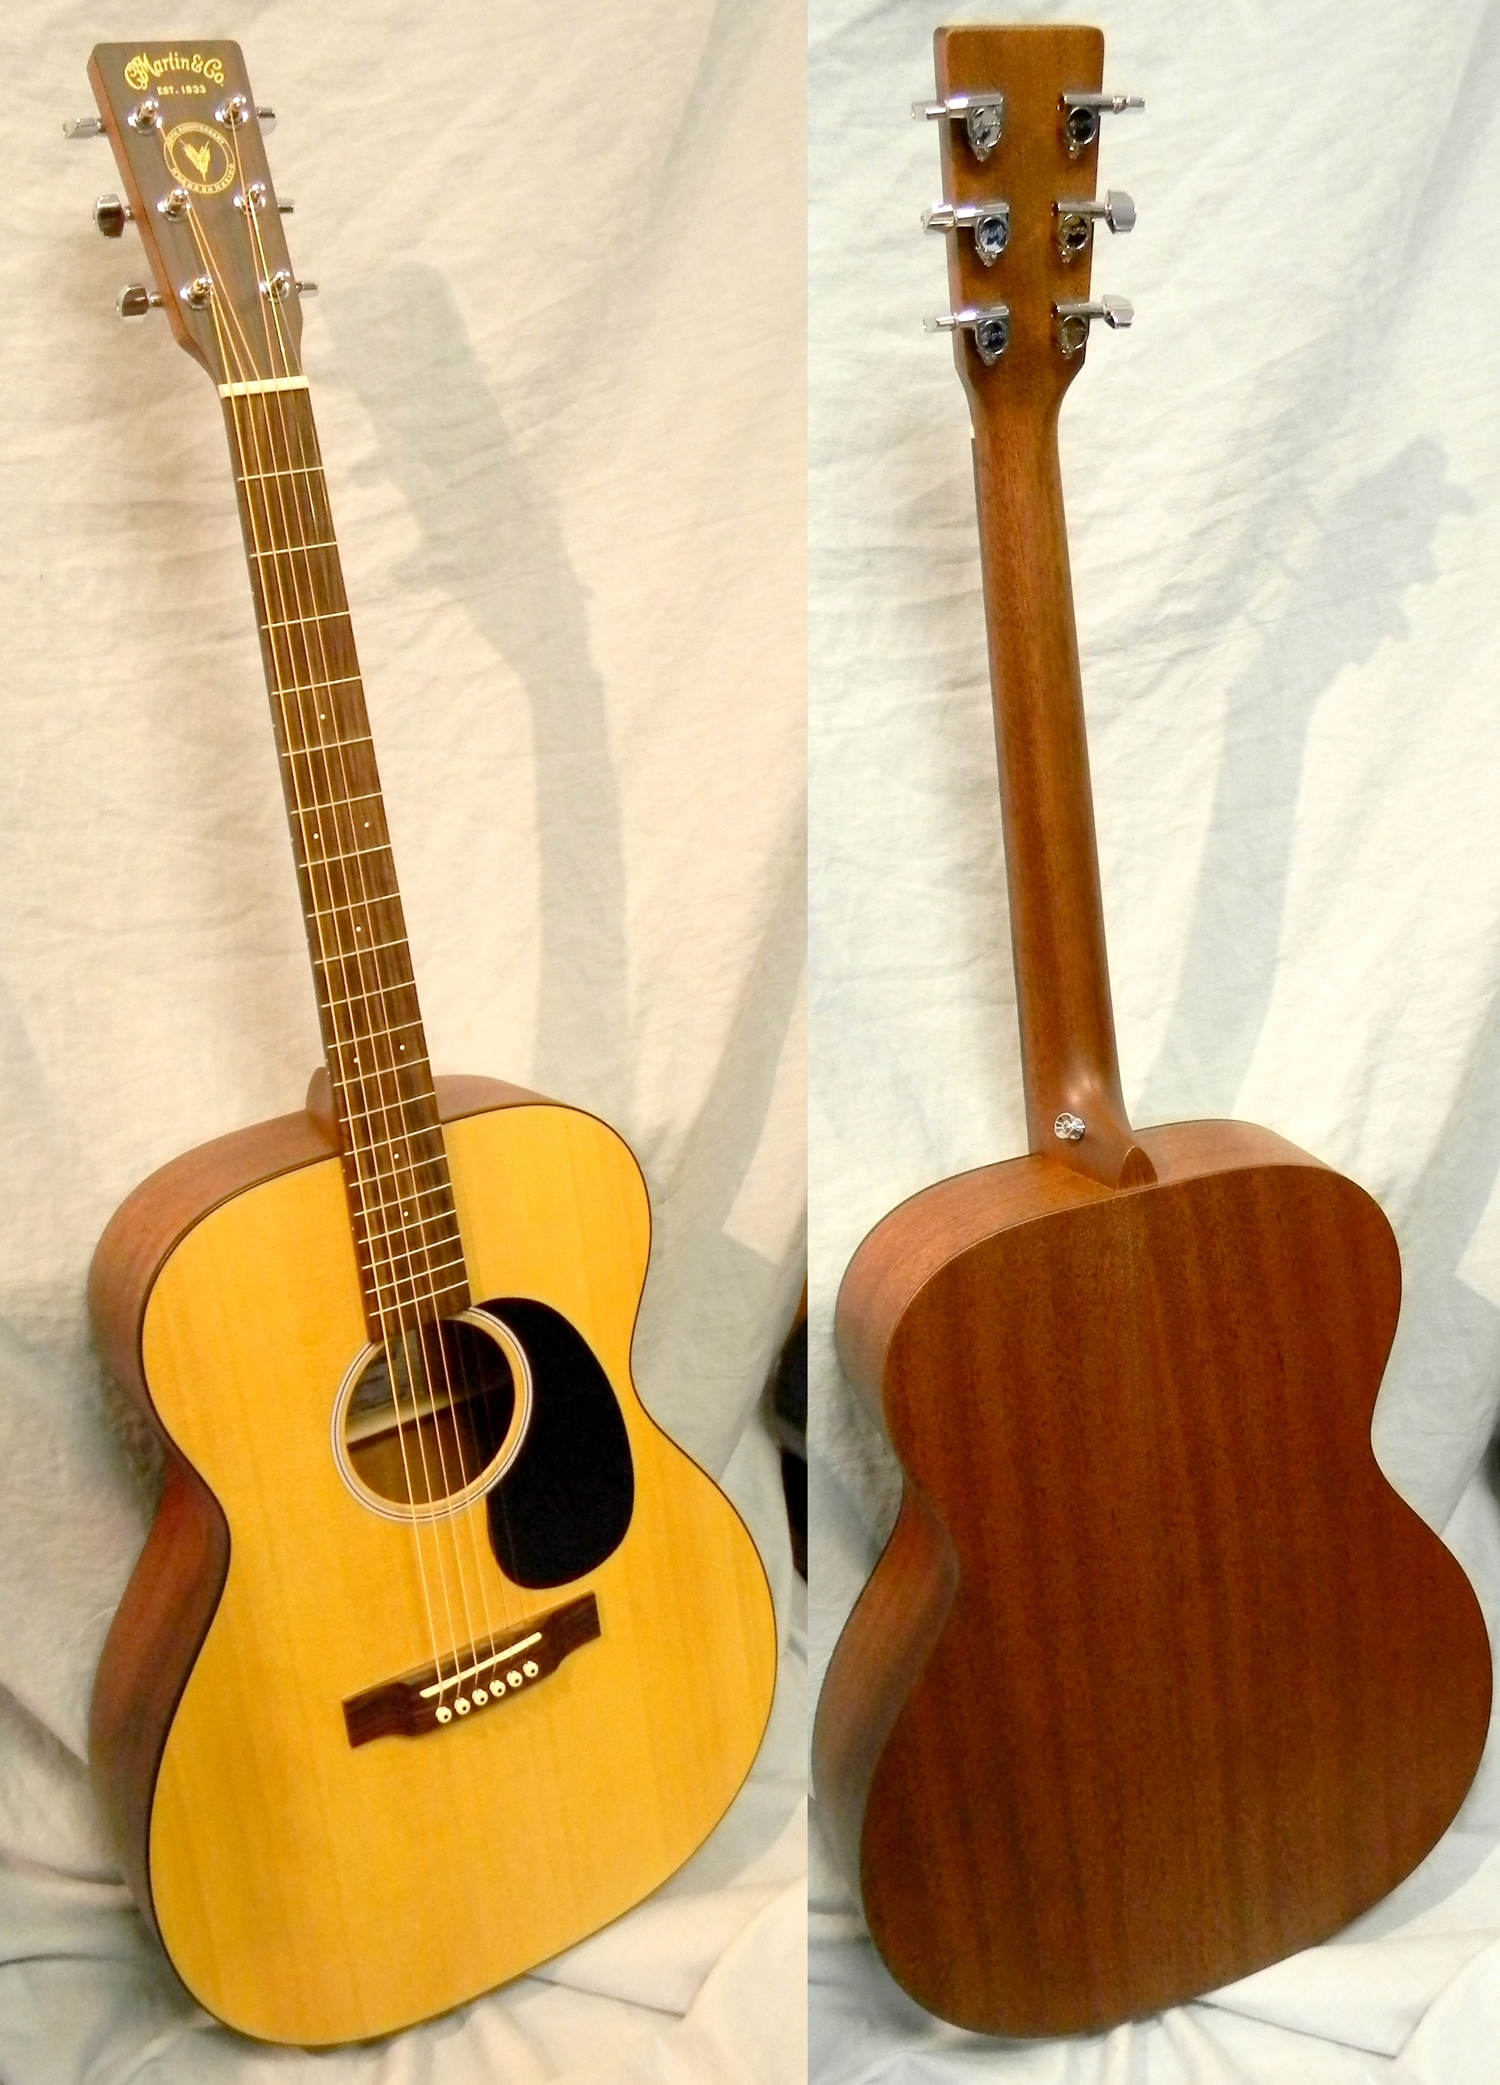 000RS. This all solid sitka and sapele guitar rocks! Has aFishman pickup and case for $995.00